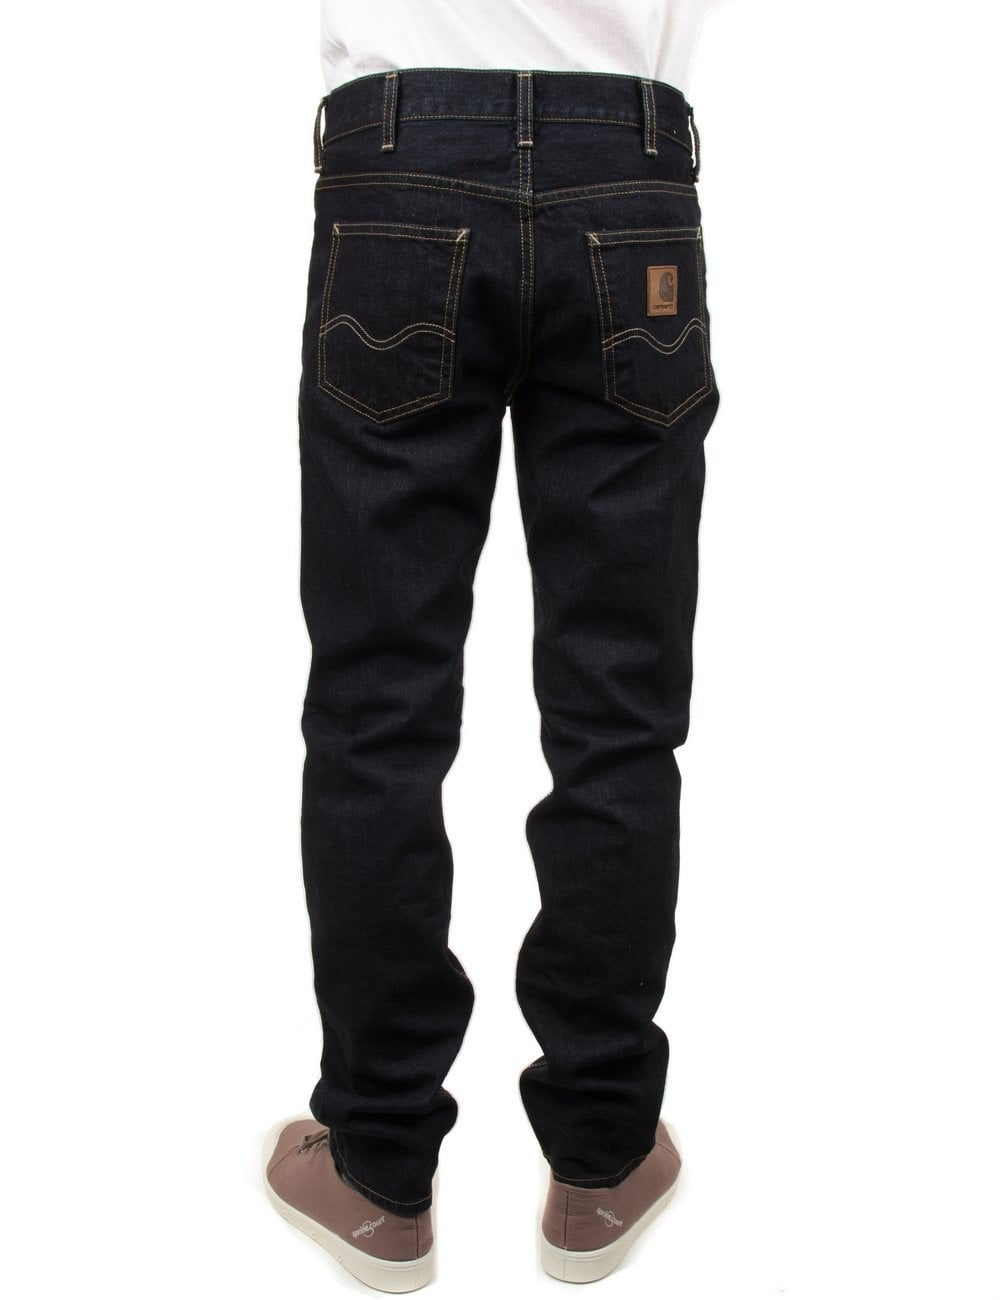 Carhartt Wip Western Pant Ii Blue Rinsed Edgewood Denim Clothing From Fat Buddha Store Uk